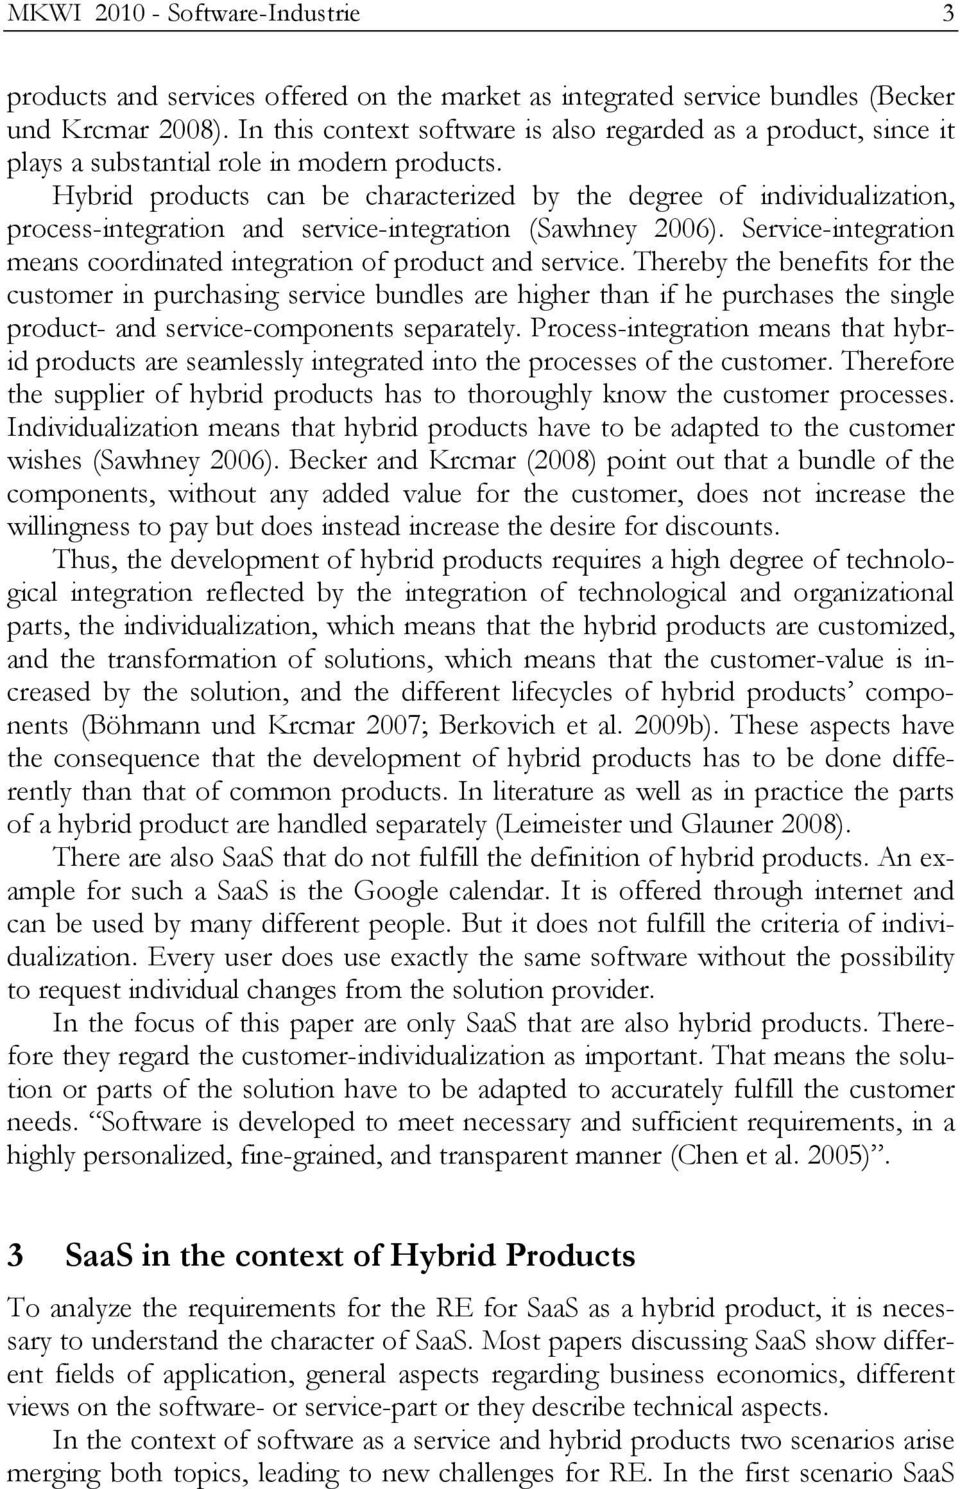 Hybrid products can be characterized by the degree of individualization, process-integration and service-integration (Sawhney 2006).